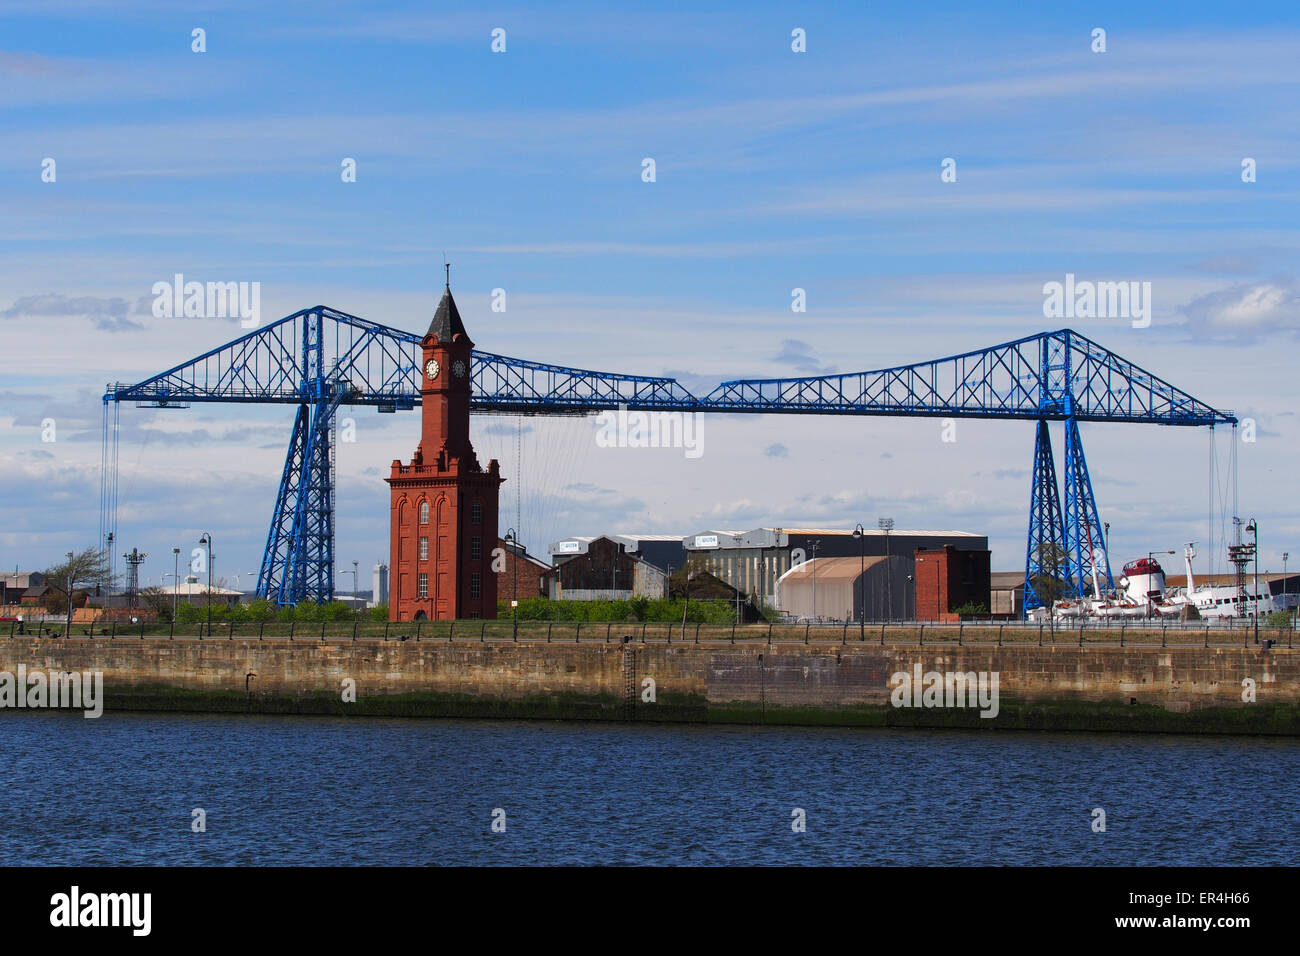 The Teesside Transporter Bridge at Middlesbrough, England, the furthest downstream bridge across the River Tees. Stock Photo